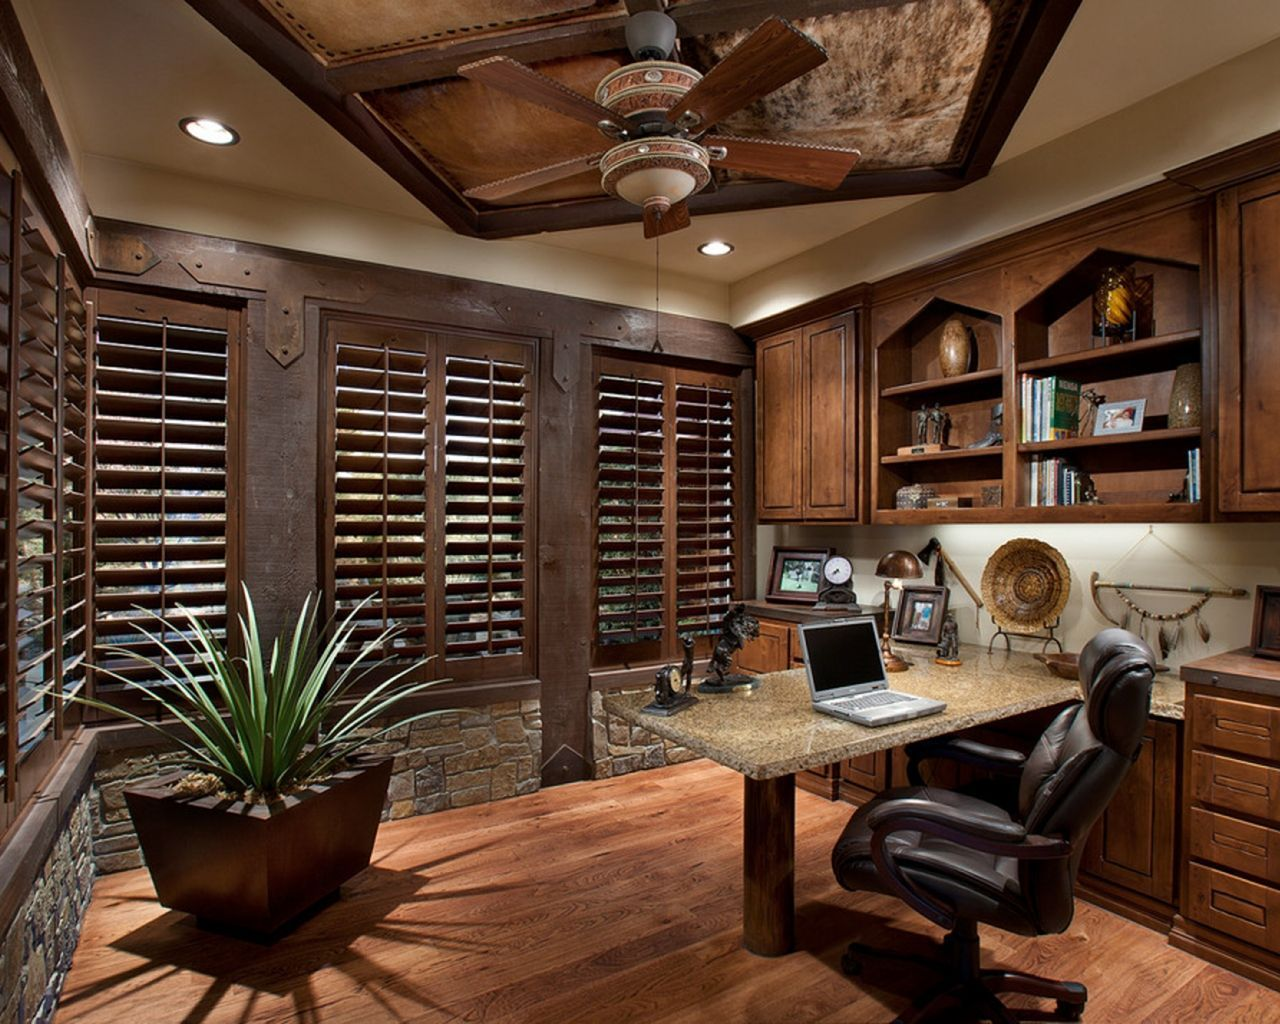 10 Perfect Home Office Design Ideas To Make You Comfortable At Work Rustic Home Offices Home Decor Catalogs Small Office Decor